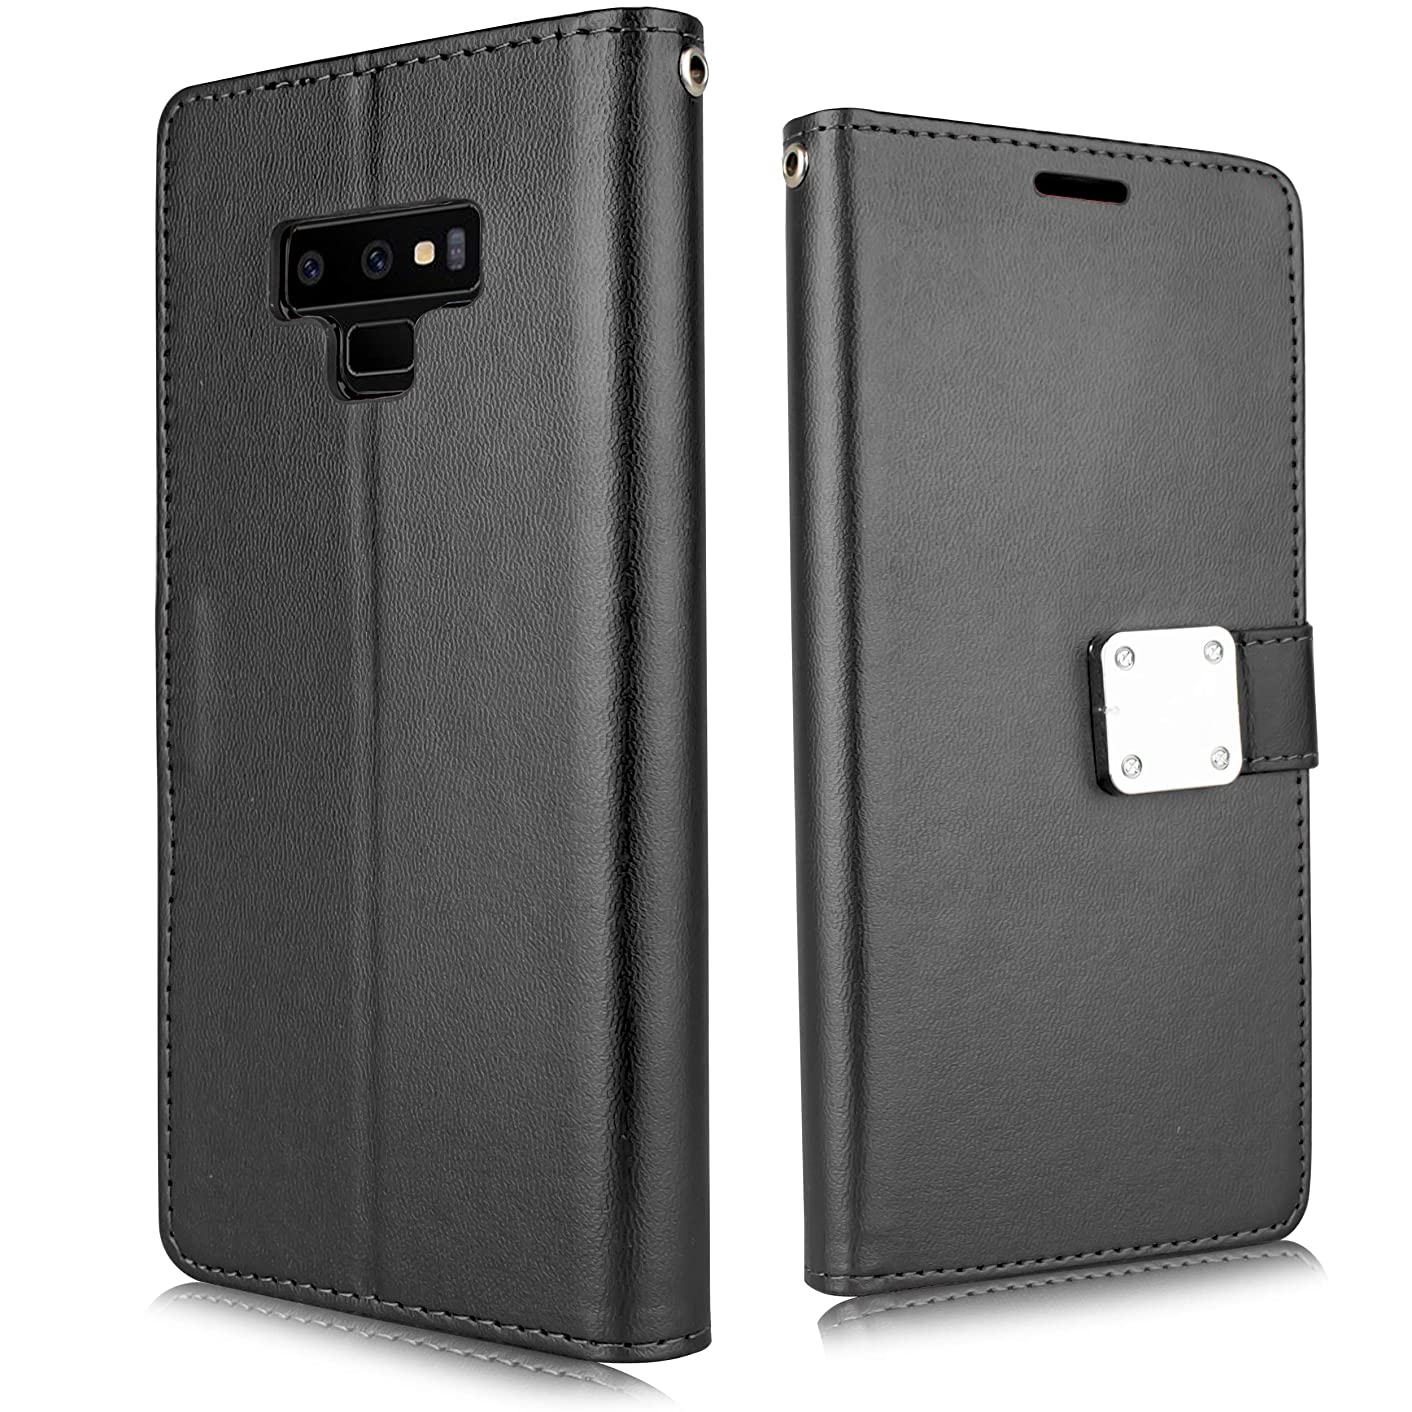 for Samsung Galaxy Note 9 (2018 Release) SM-N960U Luxury PU Leather 6 Credit Card Slot Storage Wallet Case with Wrist Strap [Free Emoji Bonus!] (Black)